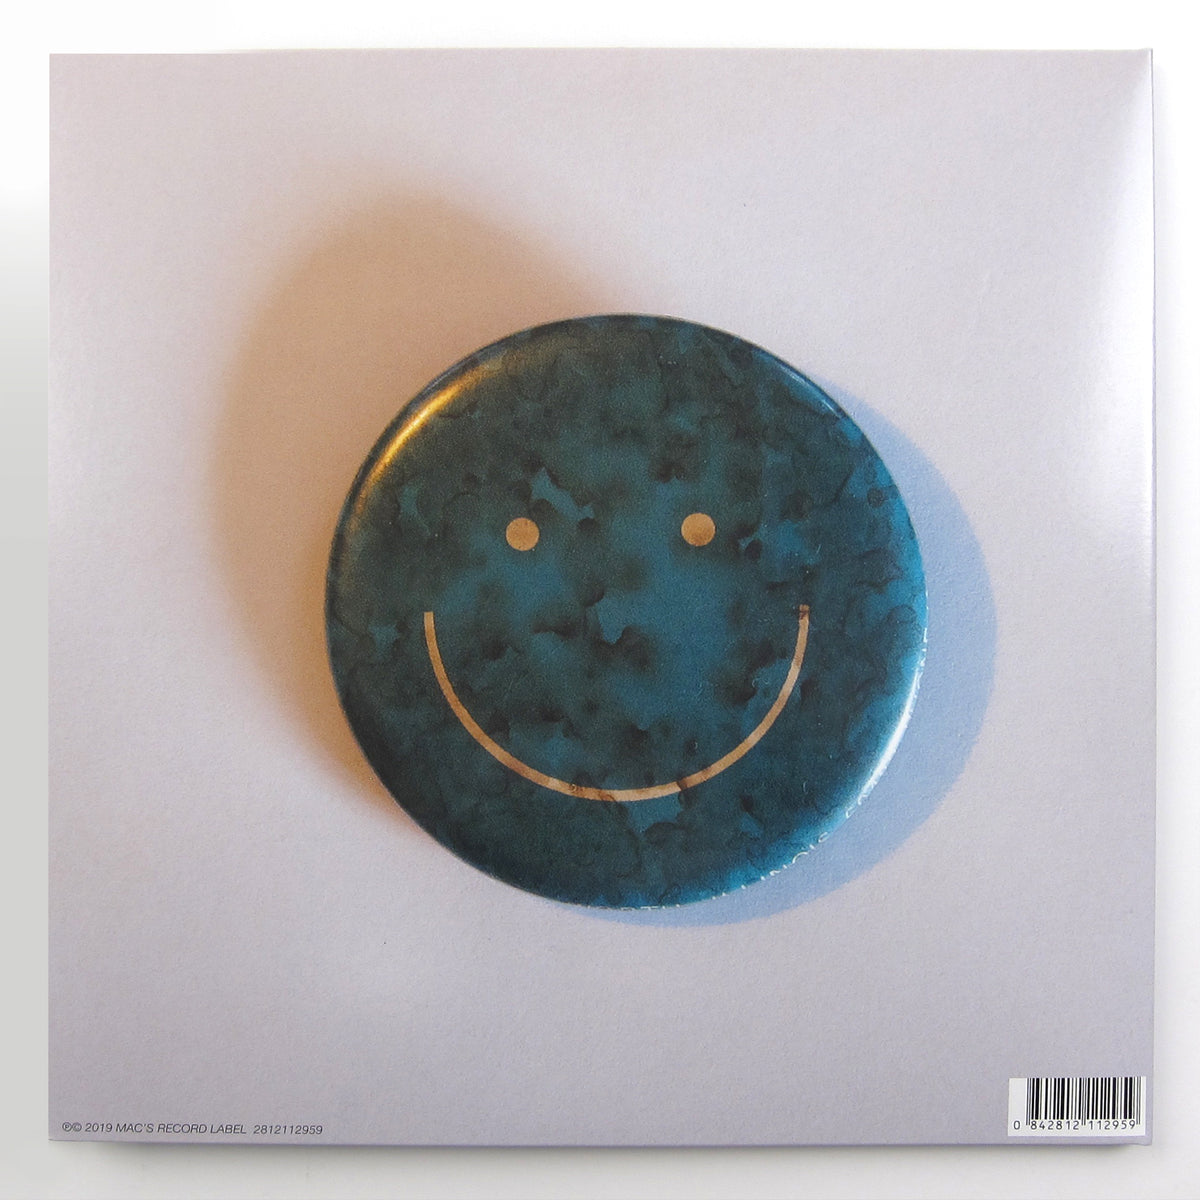 Mac DeMarco: Here Comes The Cowboy (Indie Exclusive Colored Vinyl) Vinyl LP